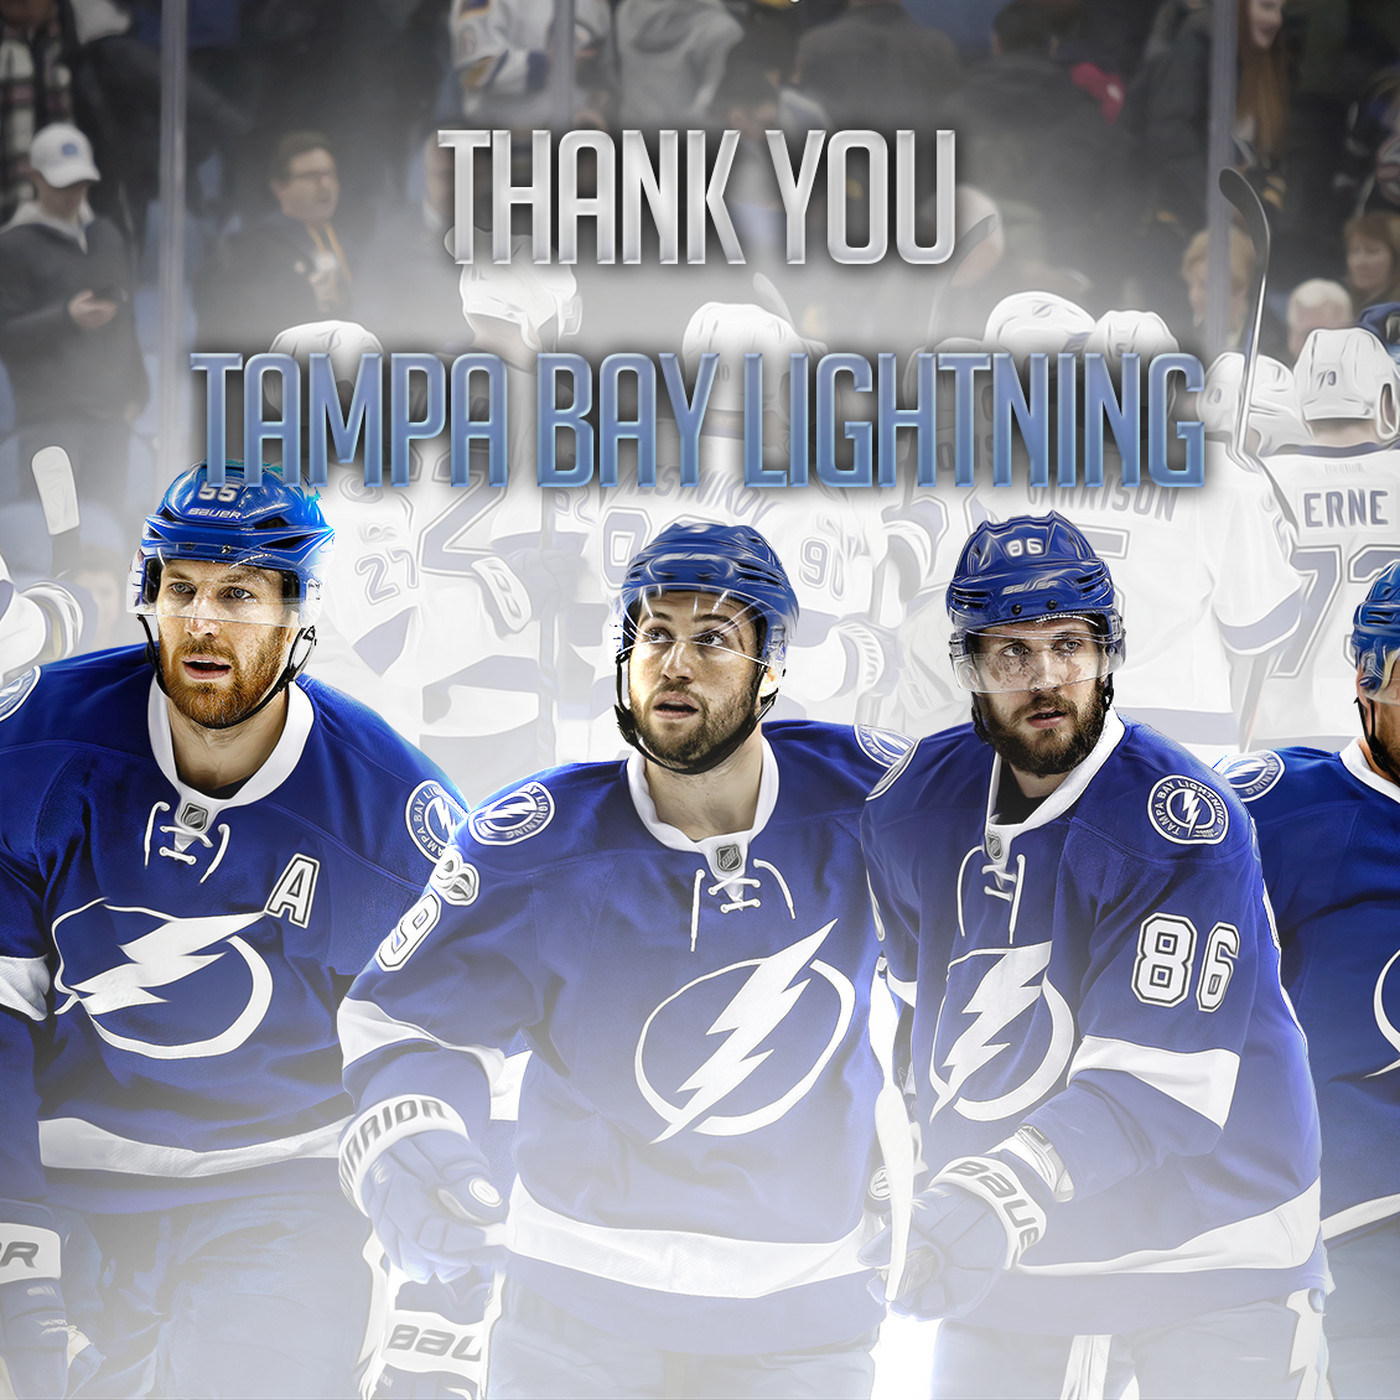 Thank You Tampa Bay Lightning Wallpaper Download Raw Charge